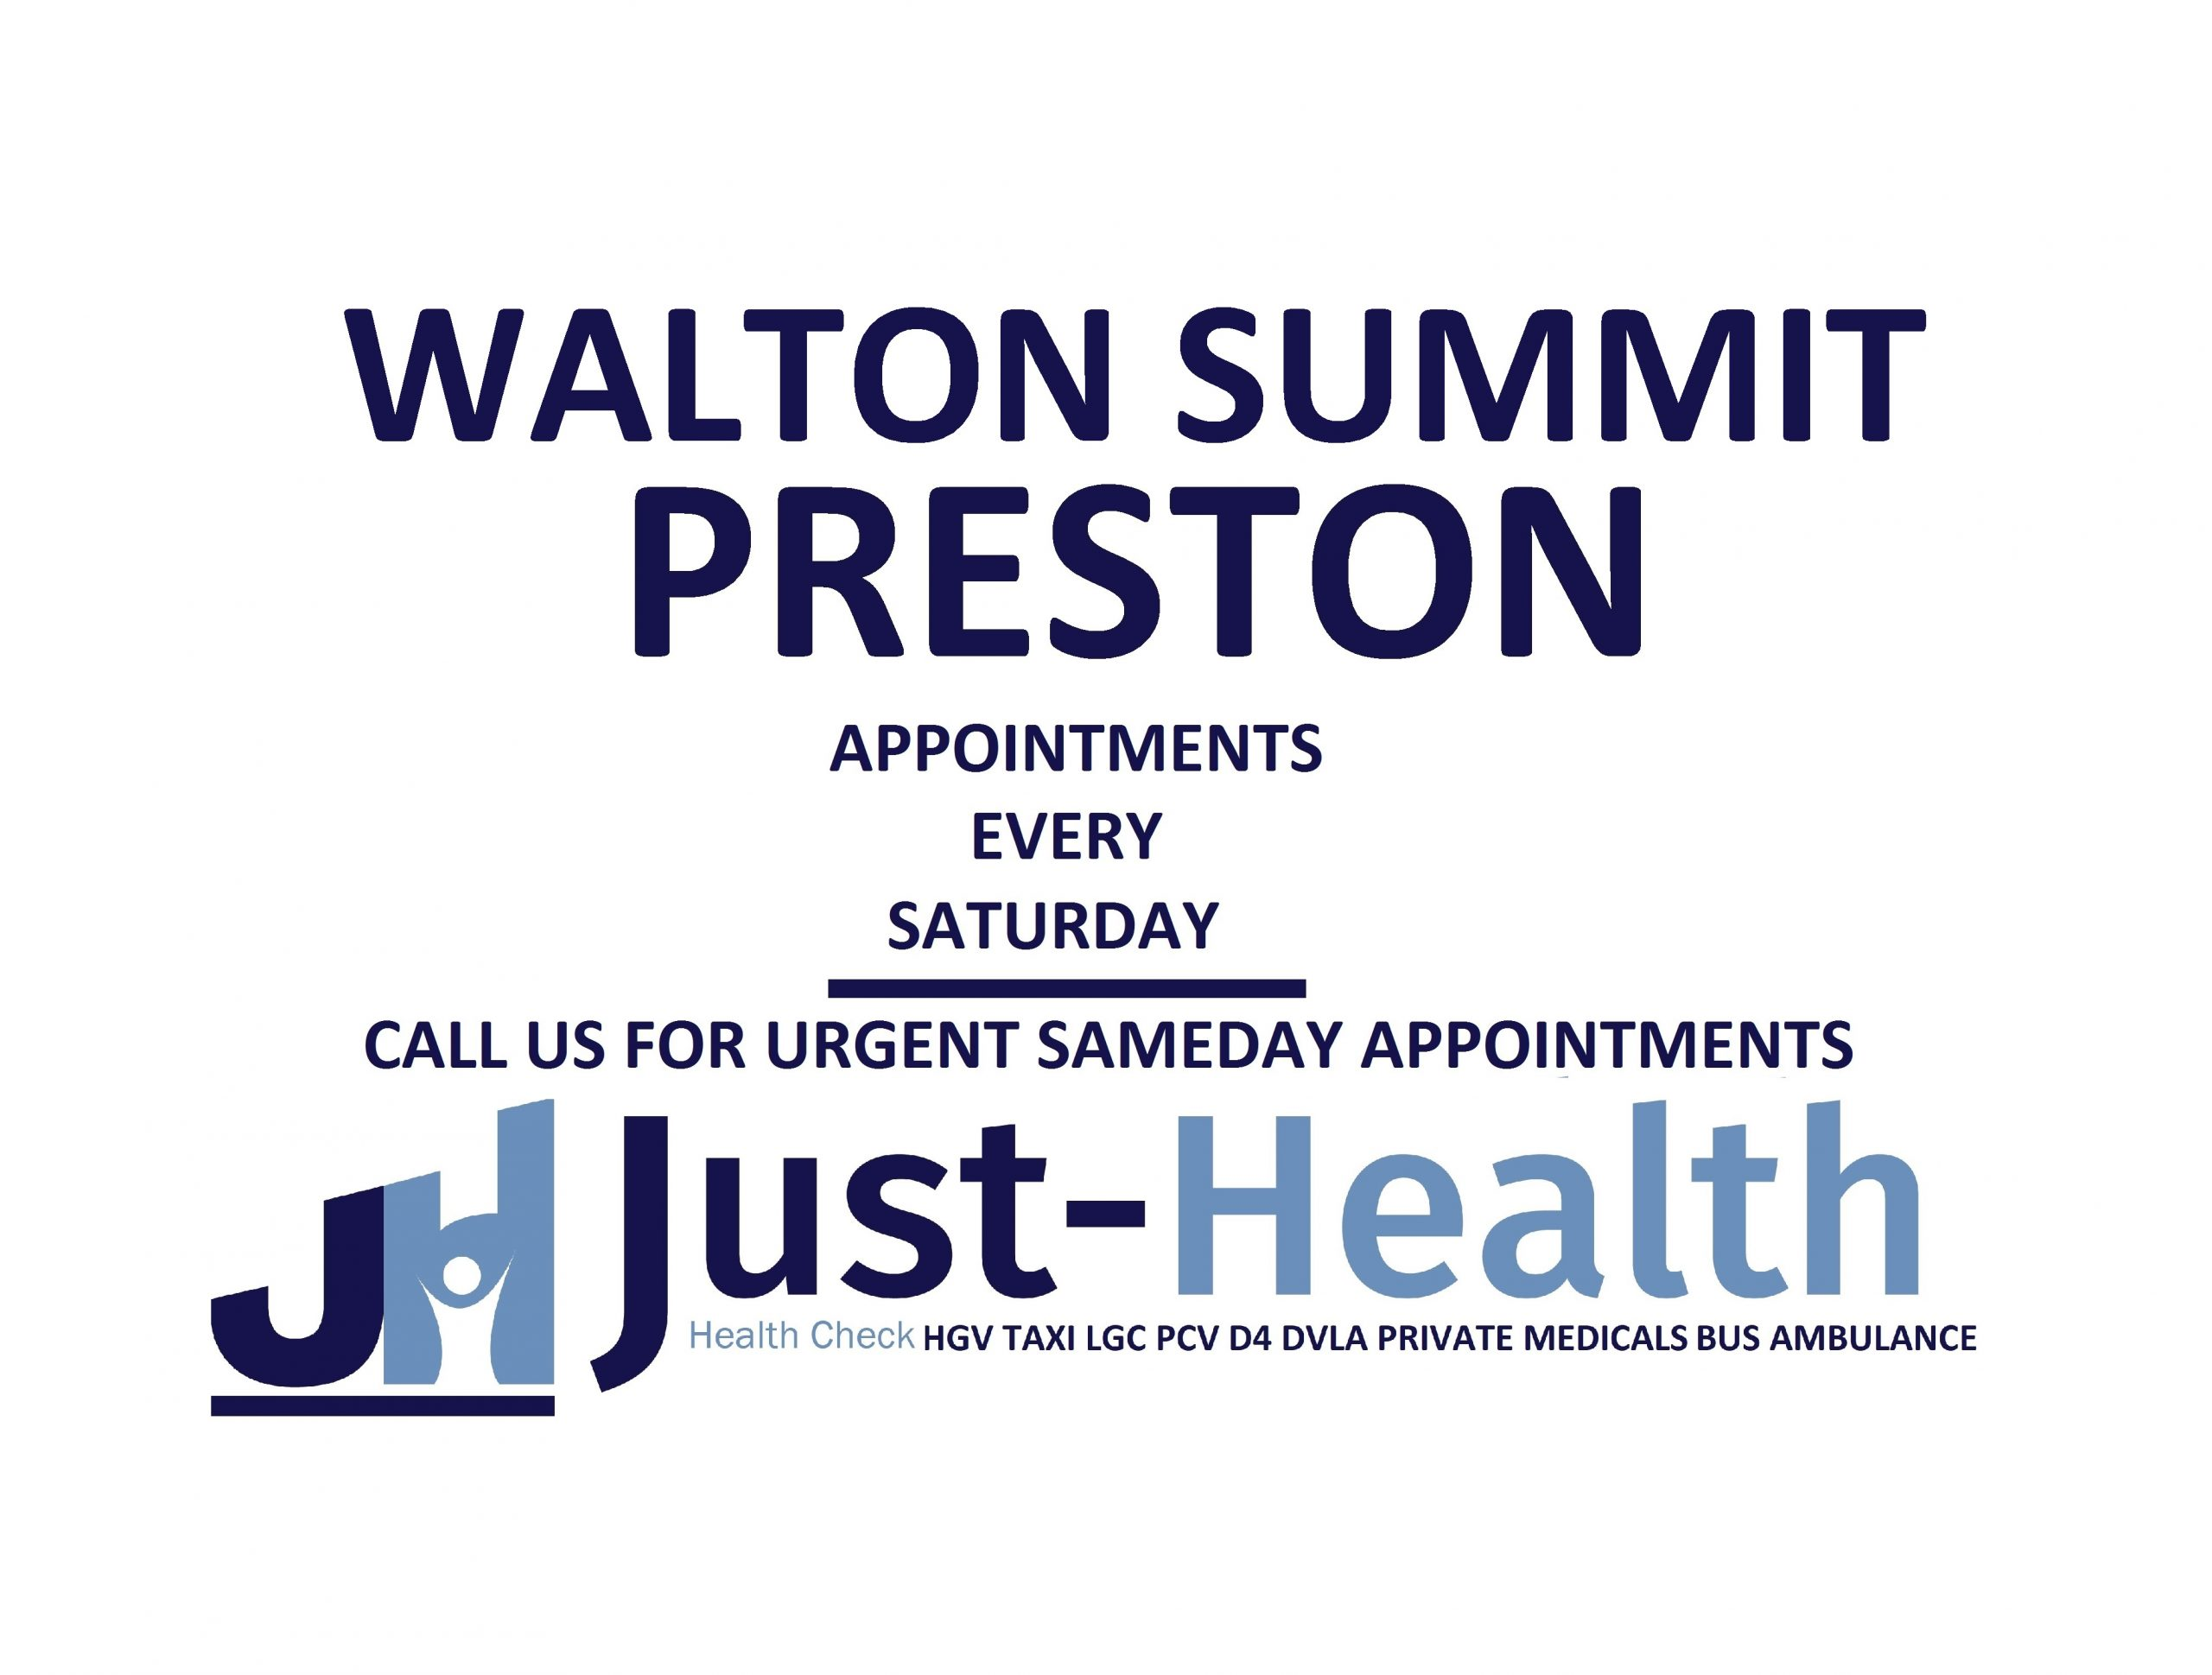 d4 PSV LGV Taxi Pcv HGV medical just health clinic walton summit preston lancashire